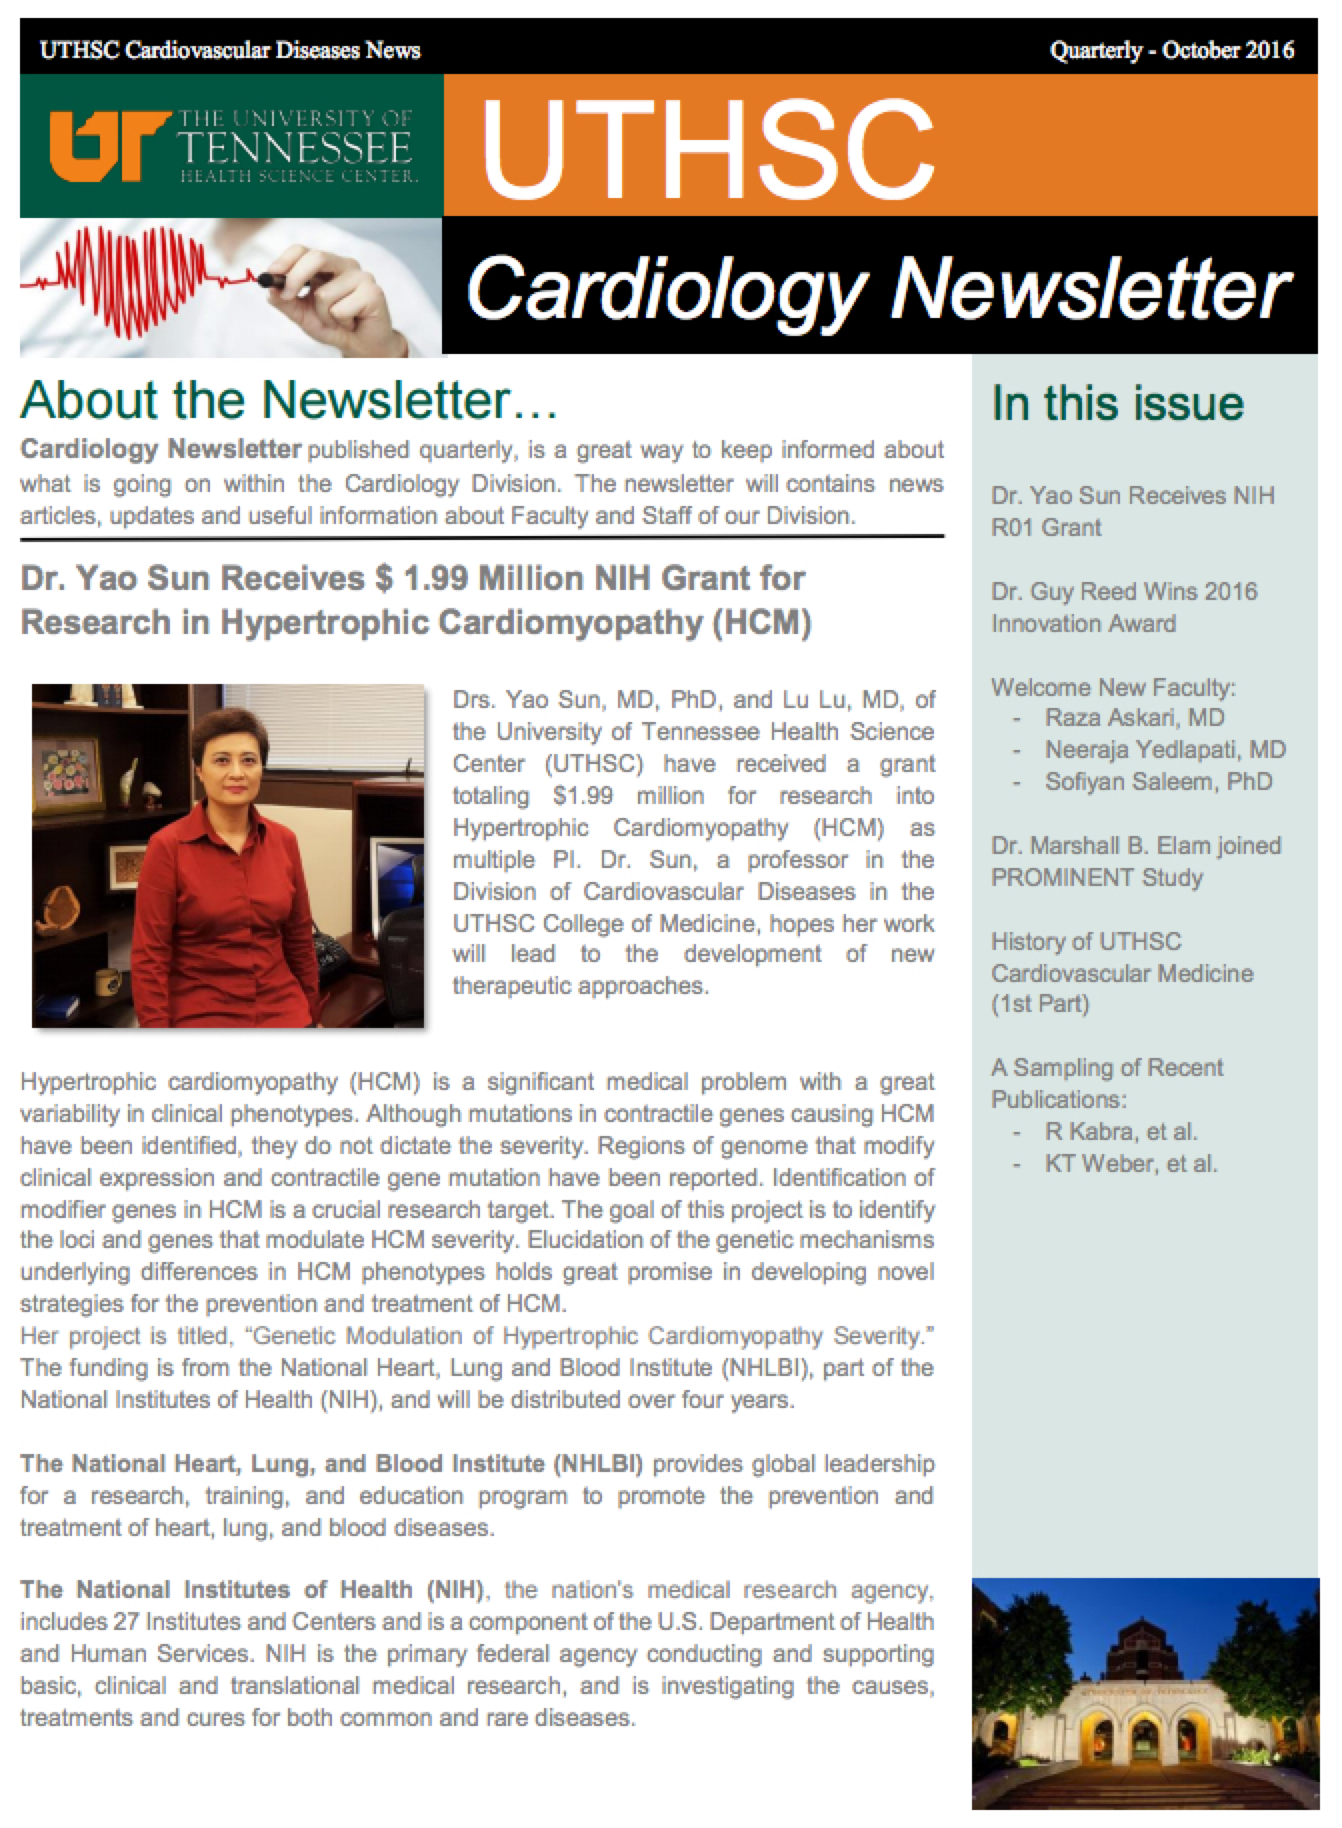 cover of latest cardiology newsletter